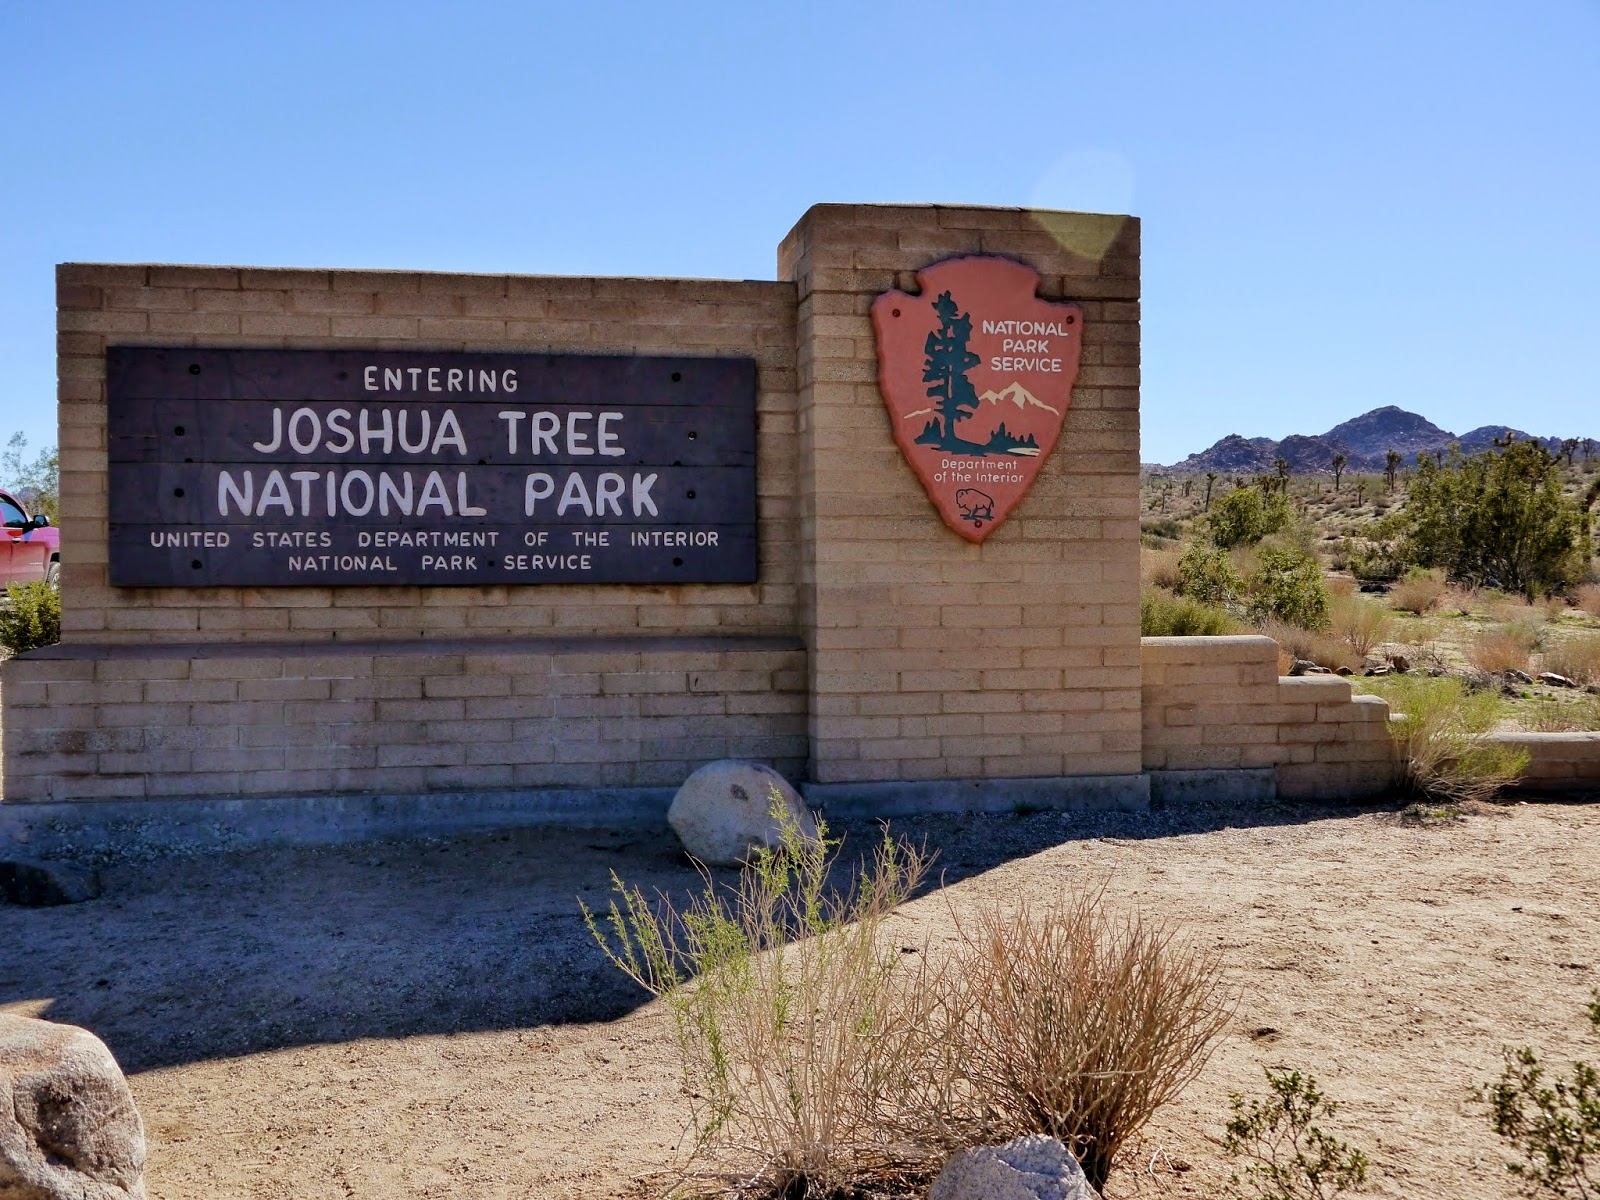 joshua tree national park muslim Joshua tree is one of my favorite national parks - it has charming campgrounds, otherworldly rock formations, super bright stars at night, and (let's not forget) yucca brevifolia - those wonky, gorge.